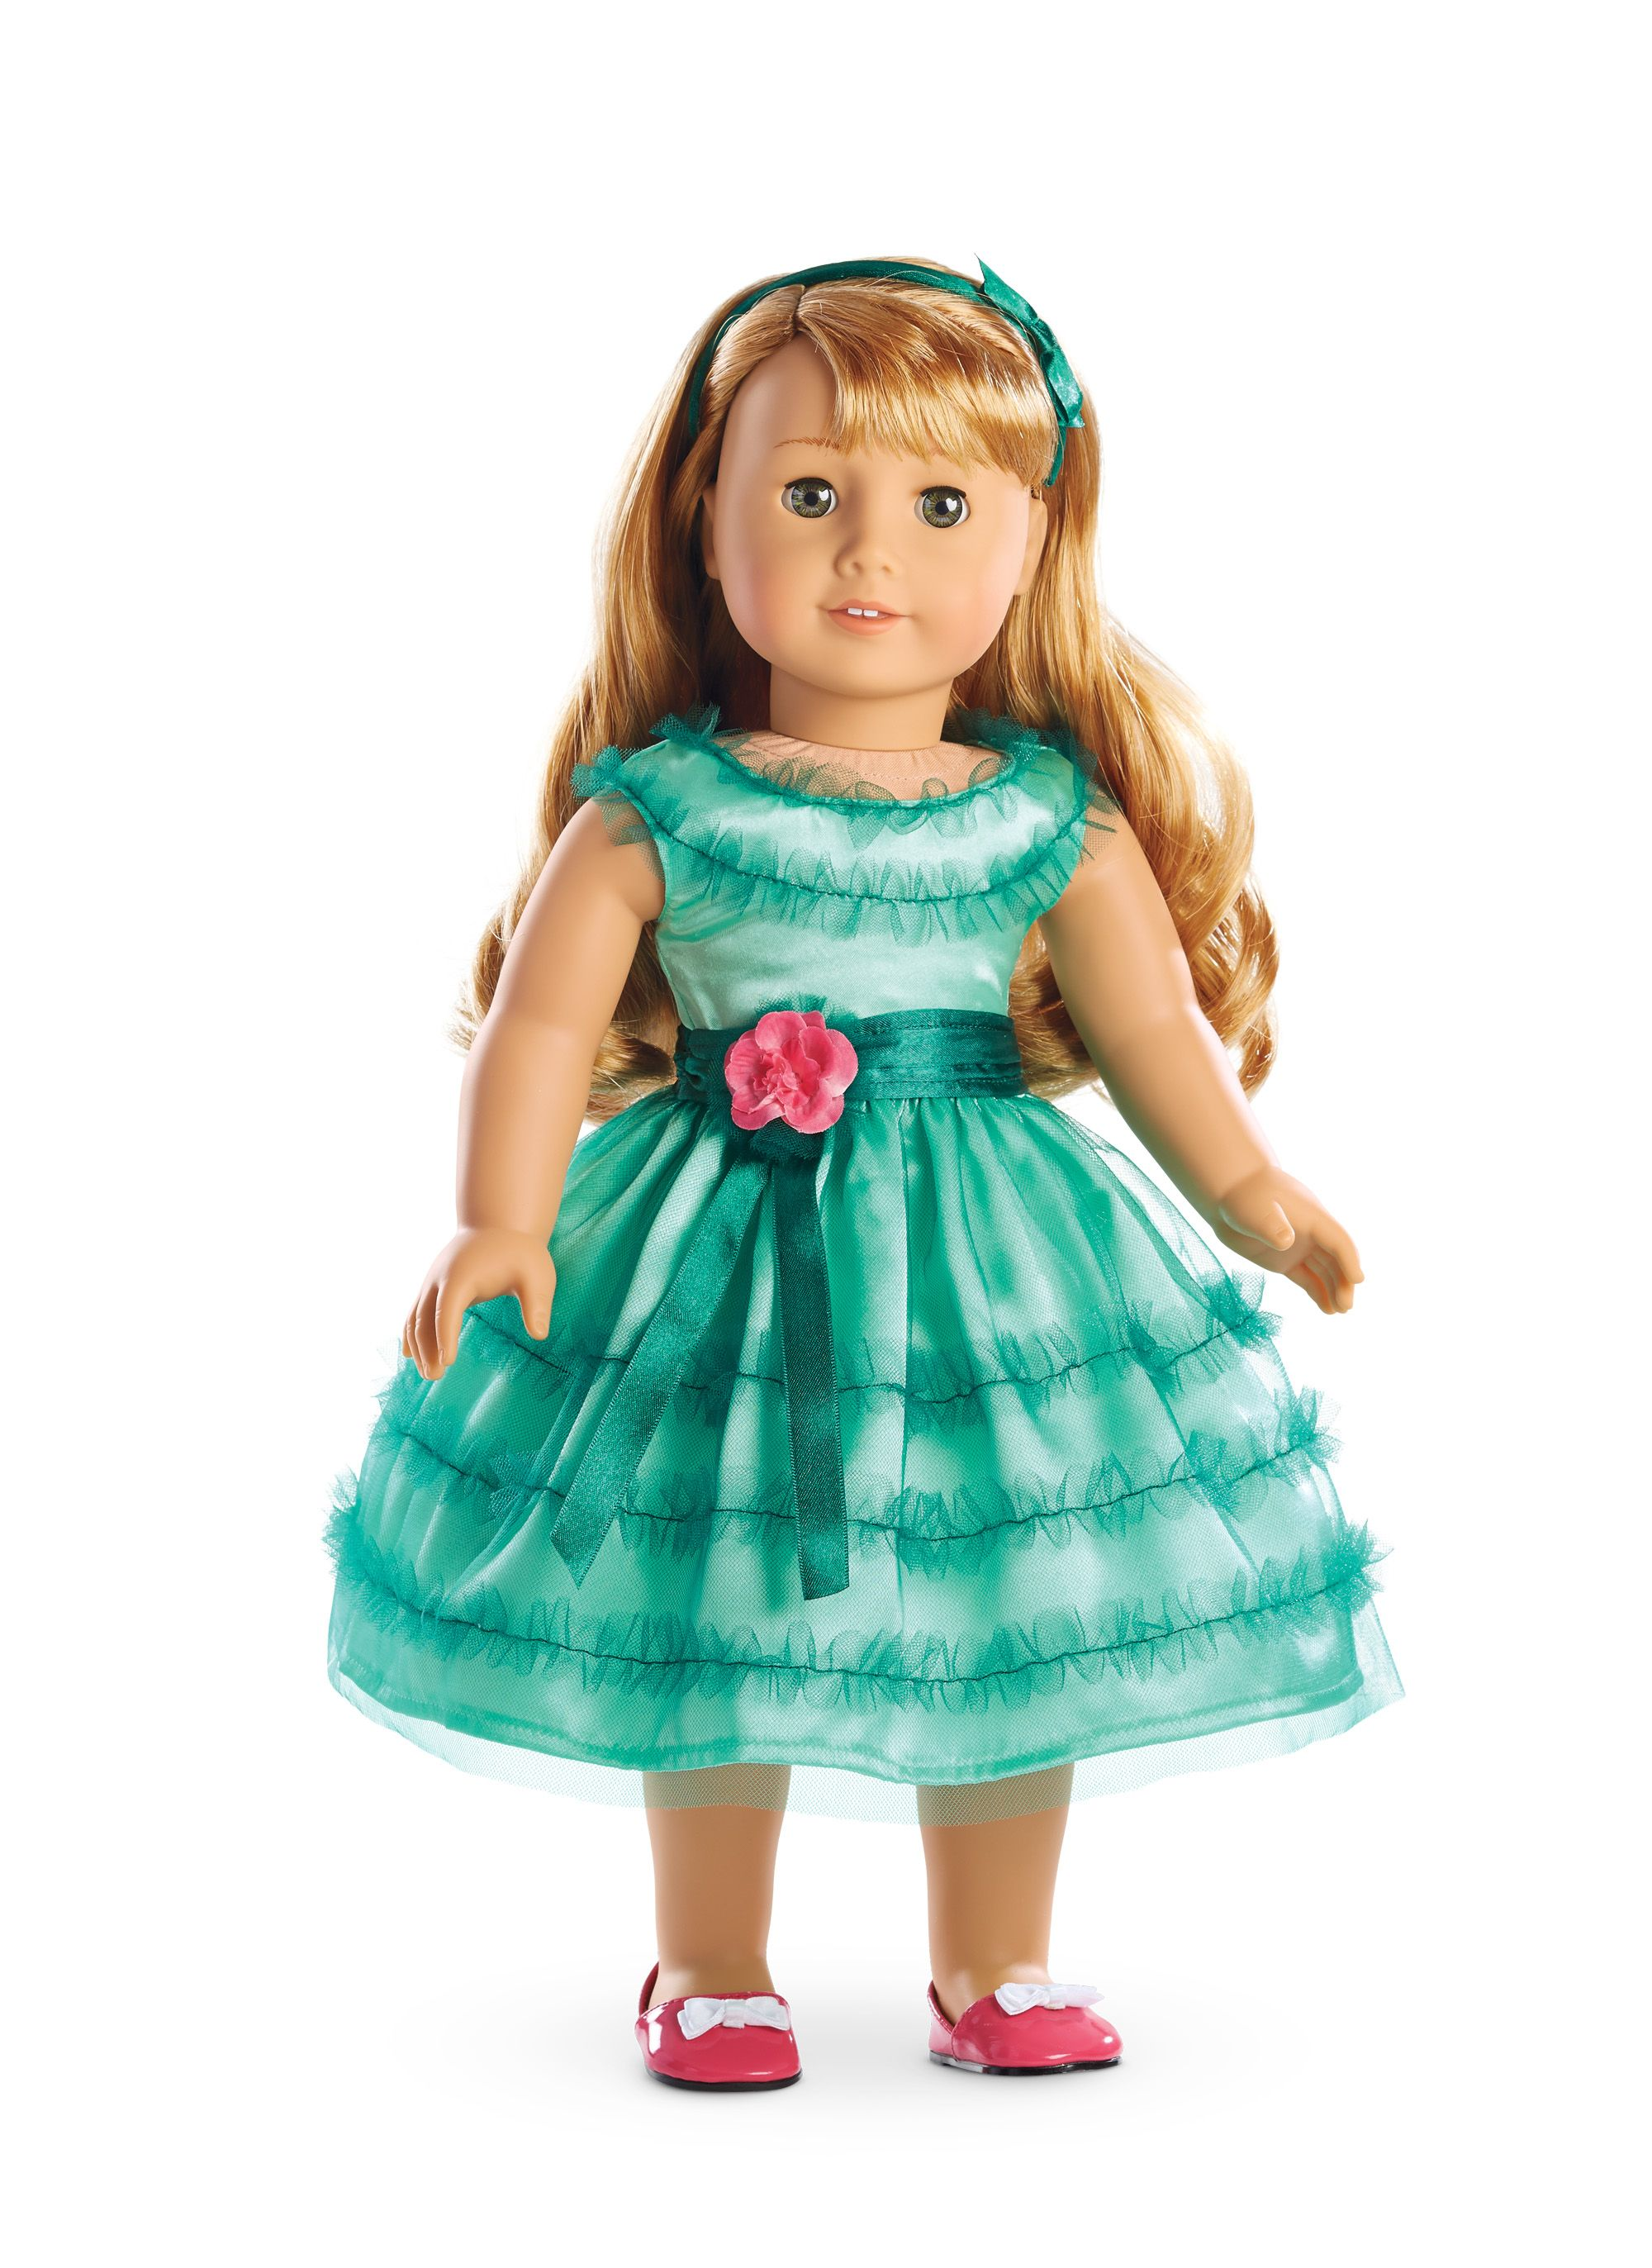 Doll Clothes Dress Outfits Pajames For 18 inch Girl/'s Birthday Gifts TuTu Dress